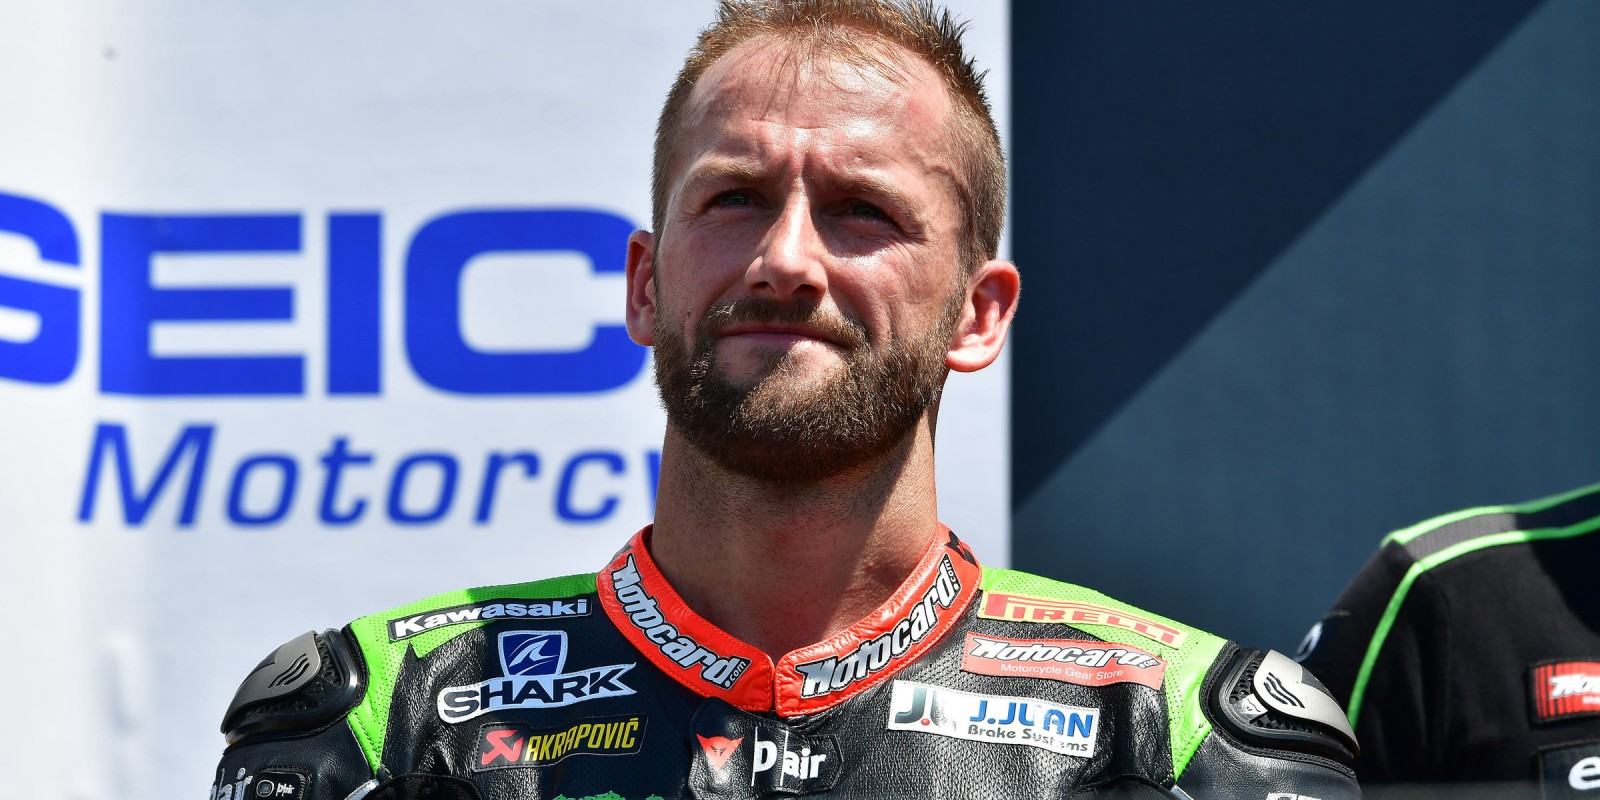 Tom Sykes at the 2017 World Superbike Geico US Round